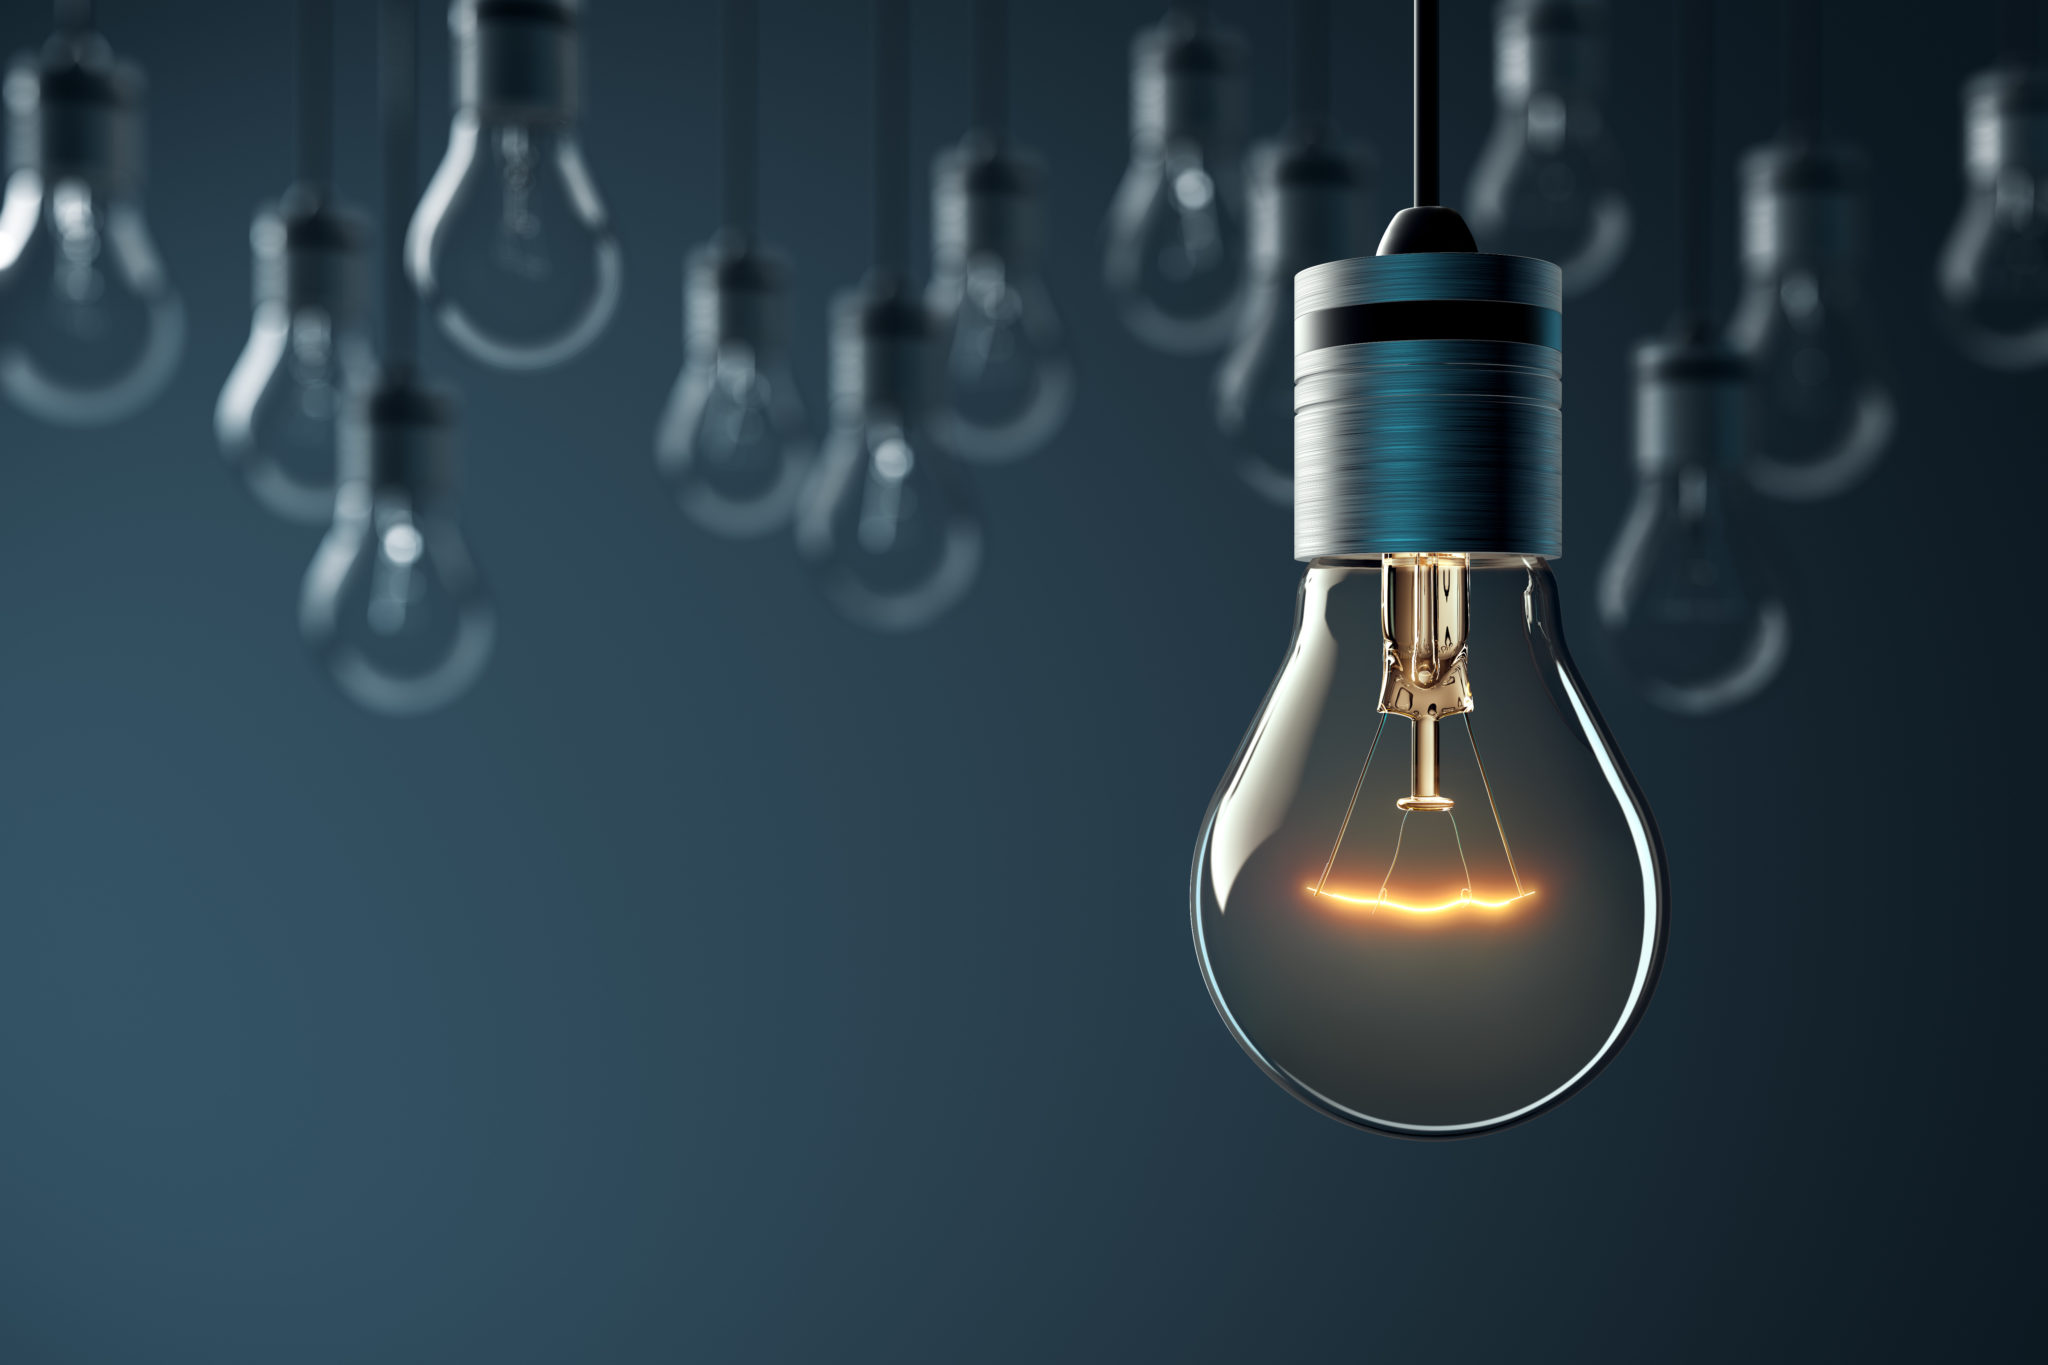 Hanging glowing light bulb on blue background